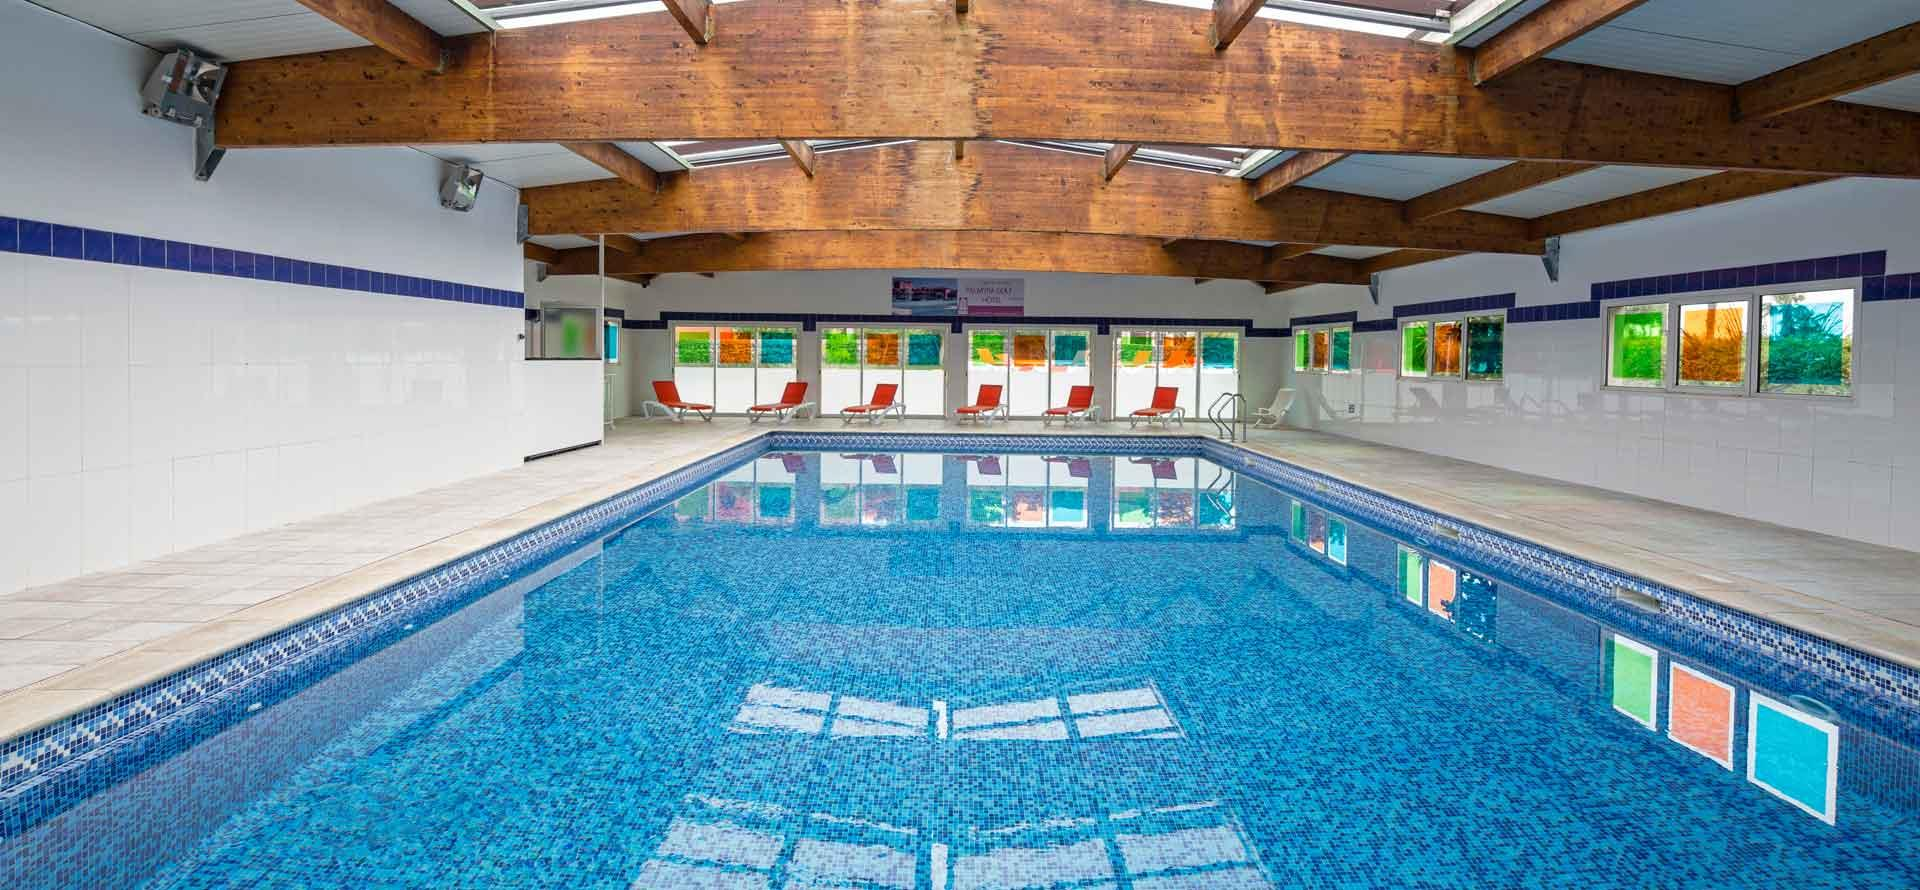 View of the indoor pool at the Palmyra Golf hotel in Cap d'Agde